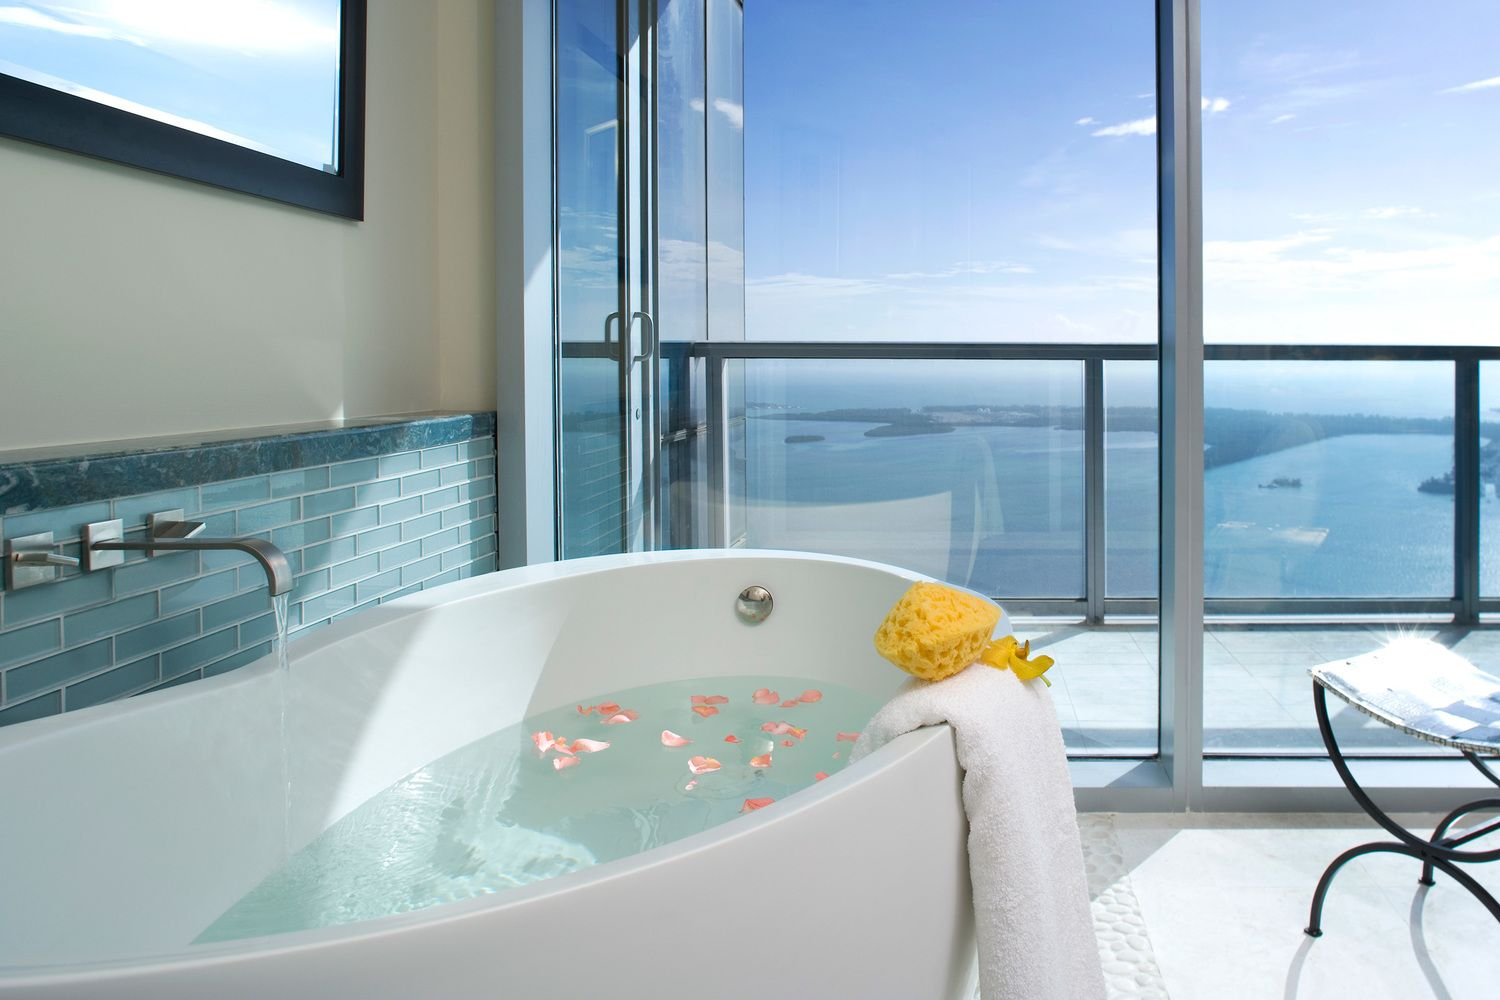 ODPArchitects_112707_1097-25.jpg   Spectacular Bathrooms   Pinterest